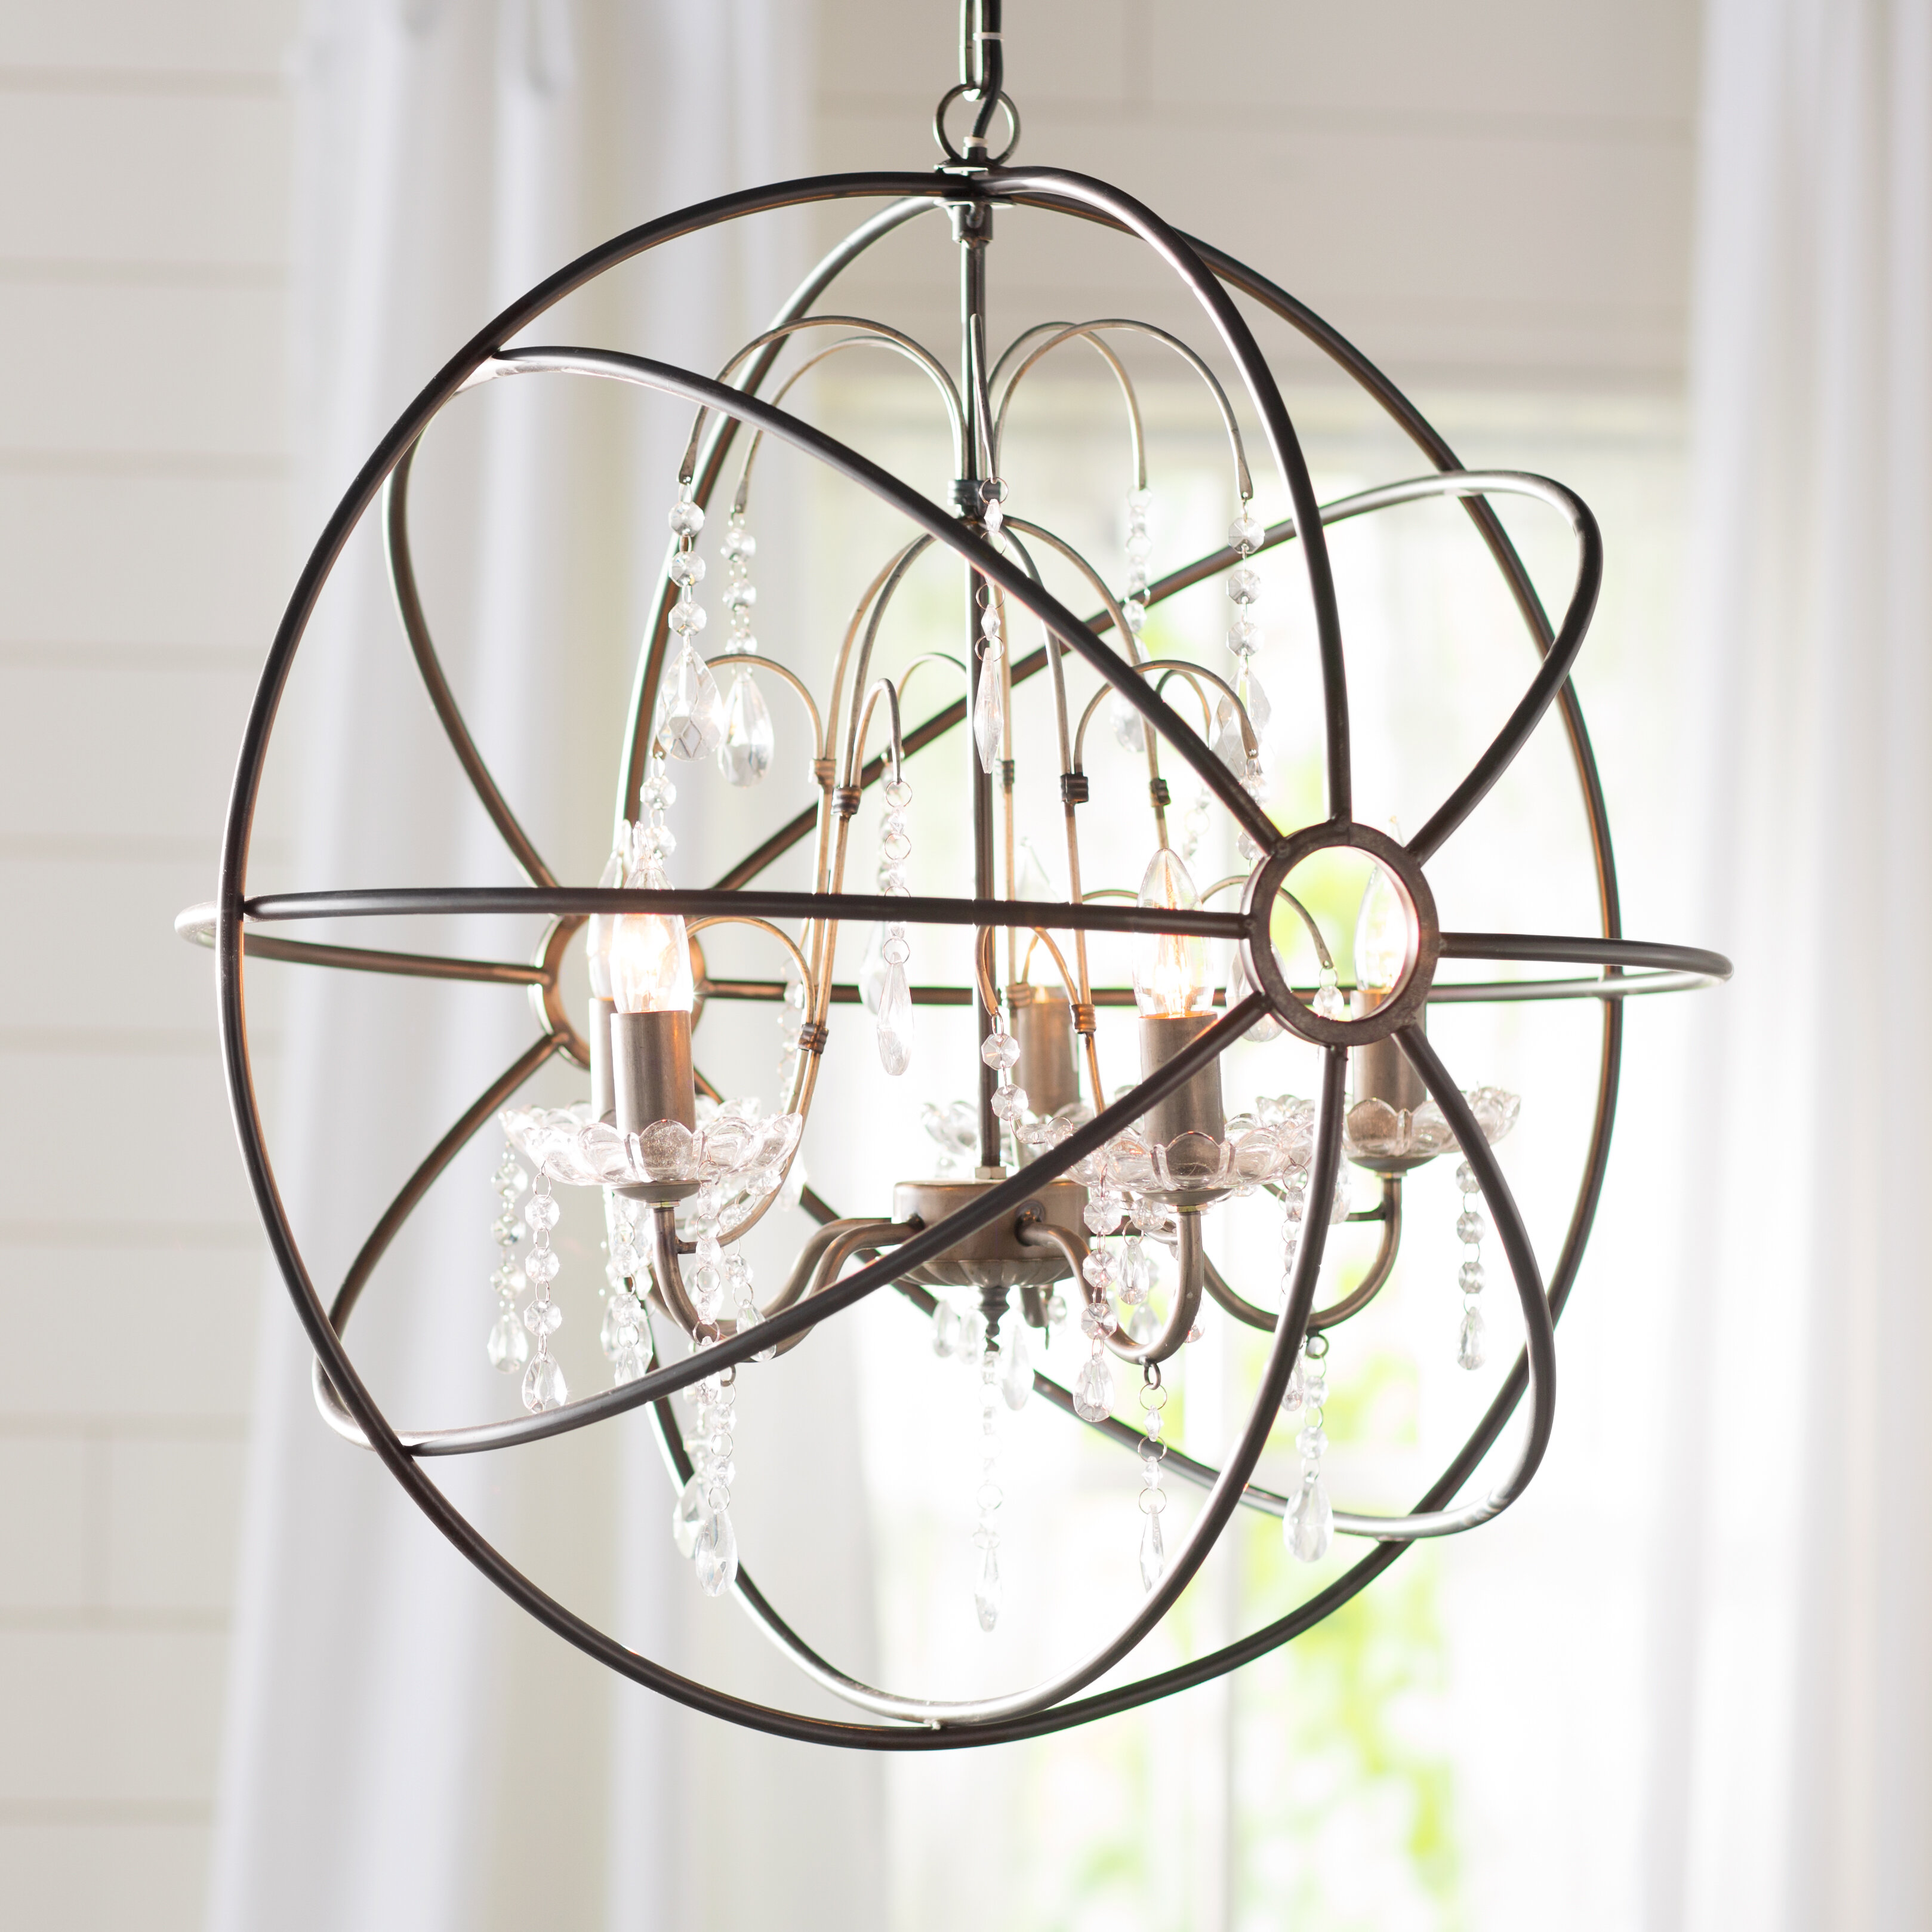 sphere finish cfm inch with wide chandelier light item lighting bronze troy crystals shown capitol byron in vintage